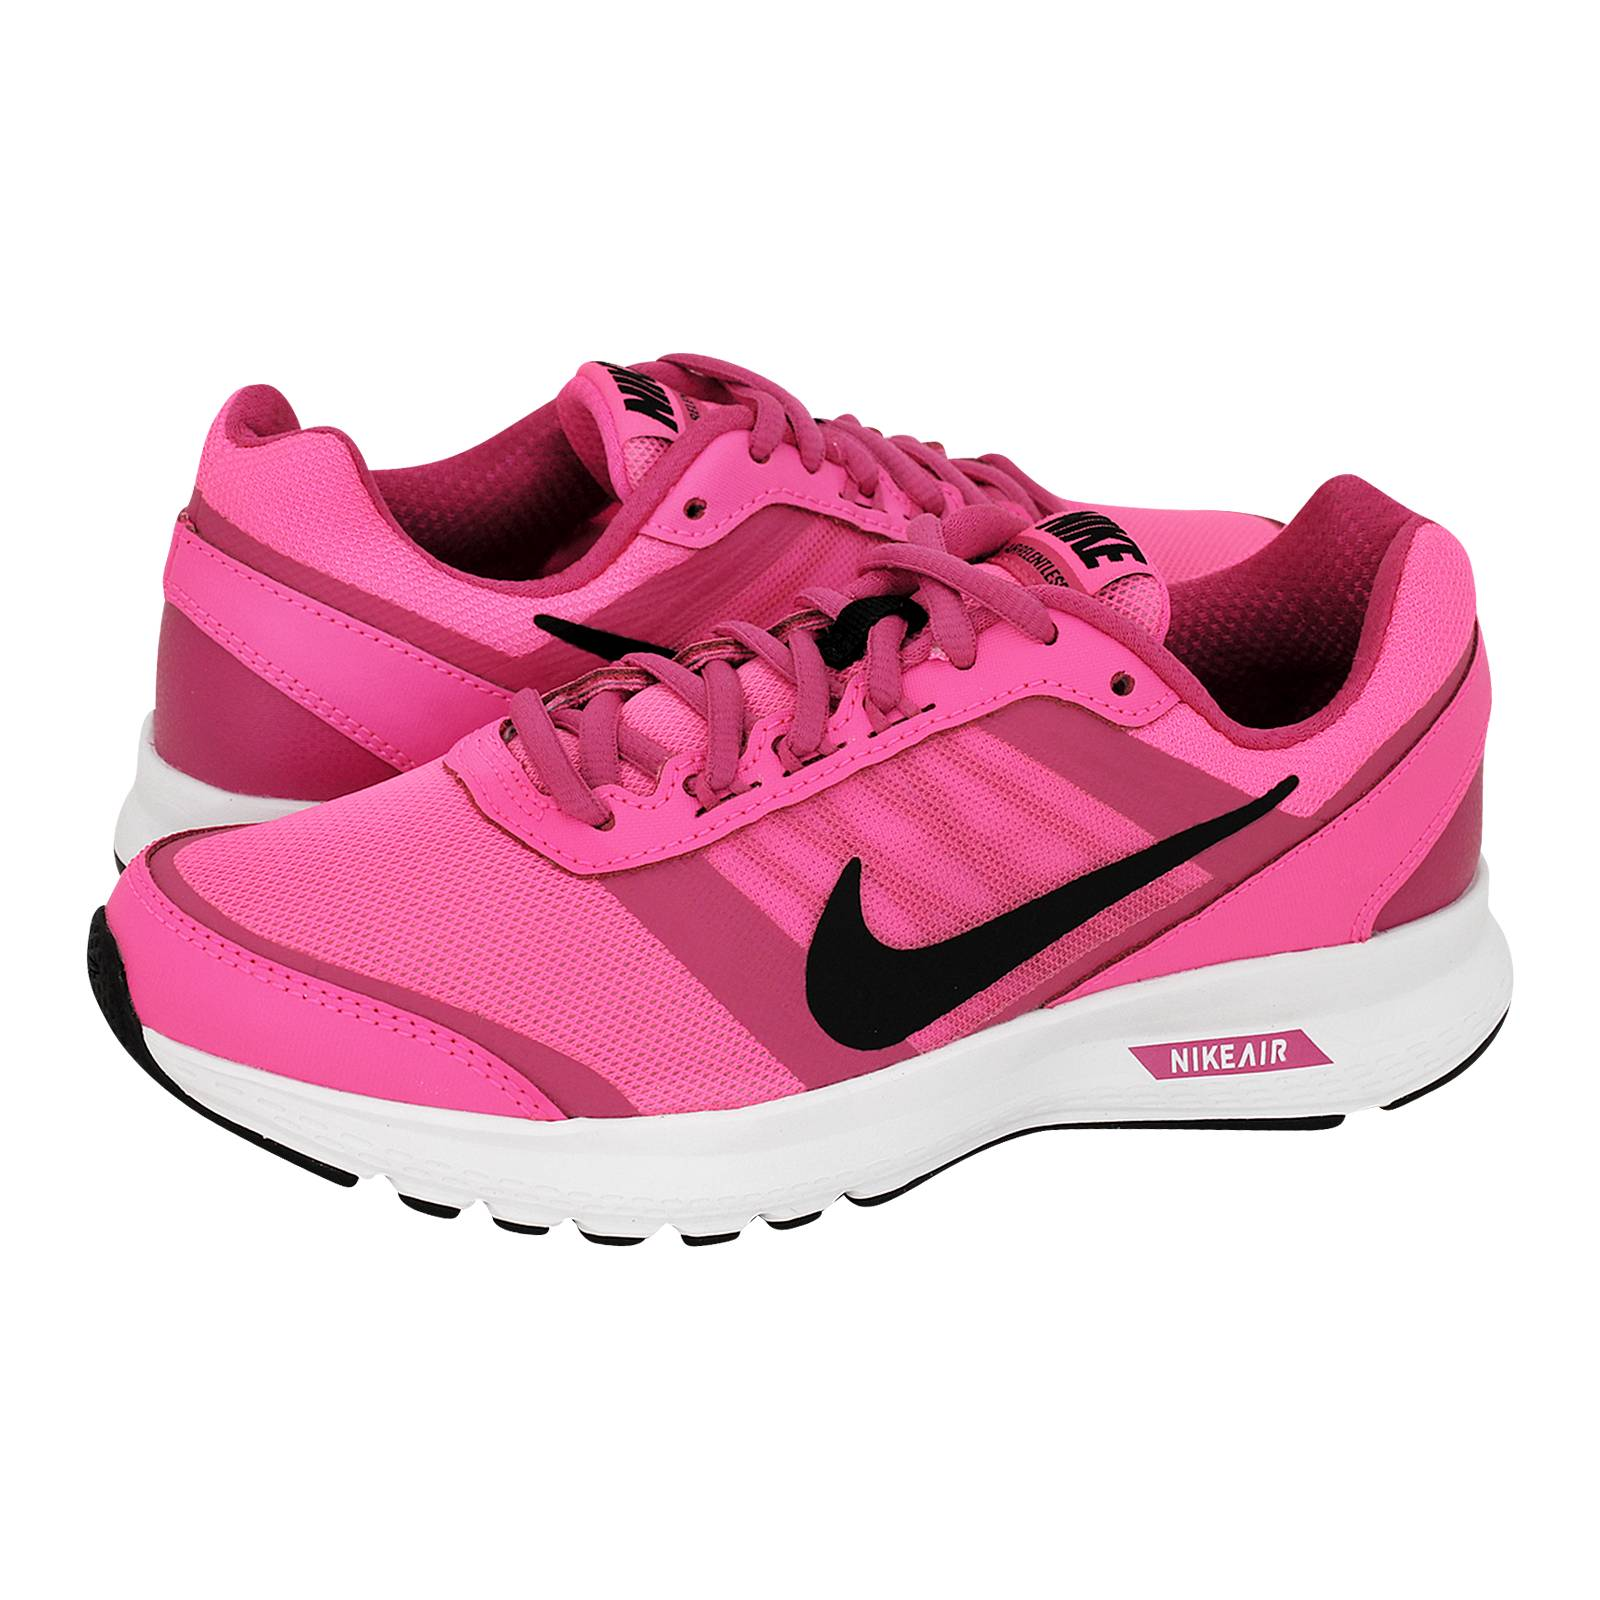 ab3c0ae9584b Air Relentless 5 - Nike Women s athletic shoes made of leather and ...